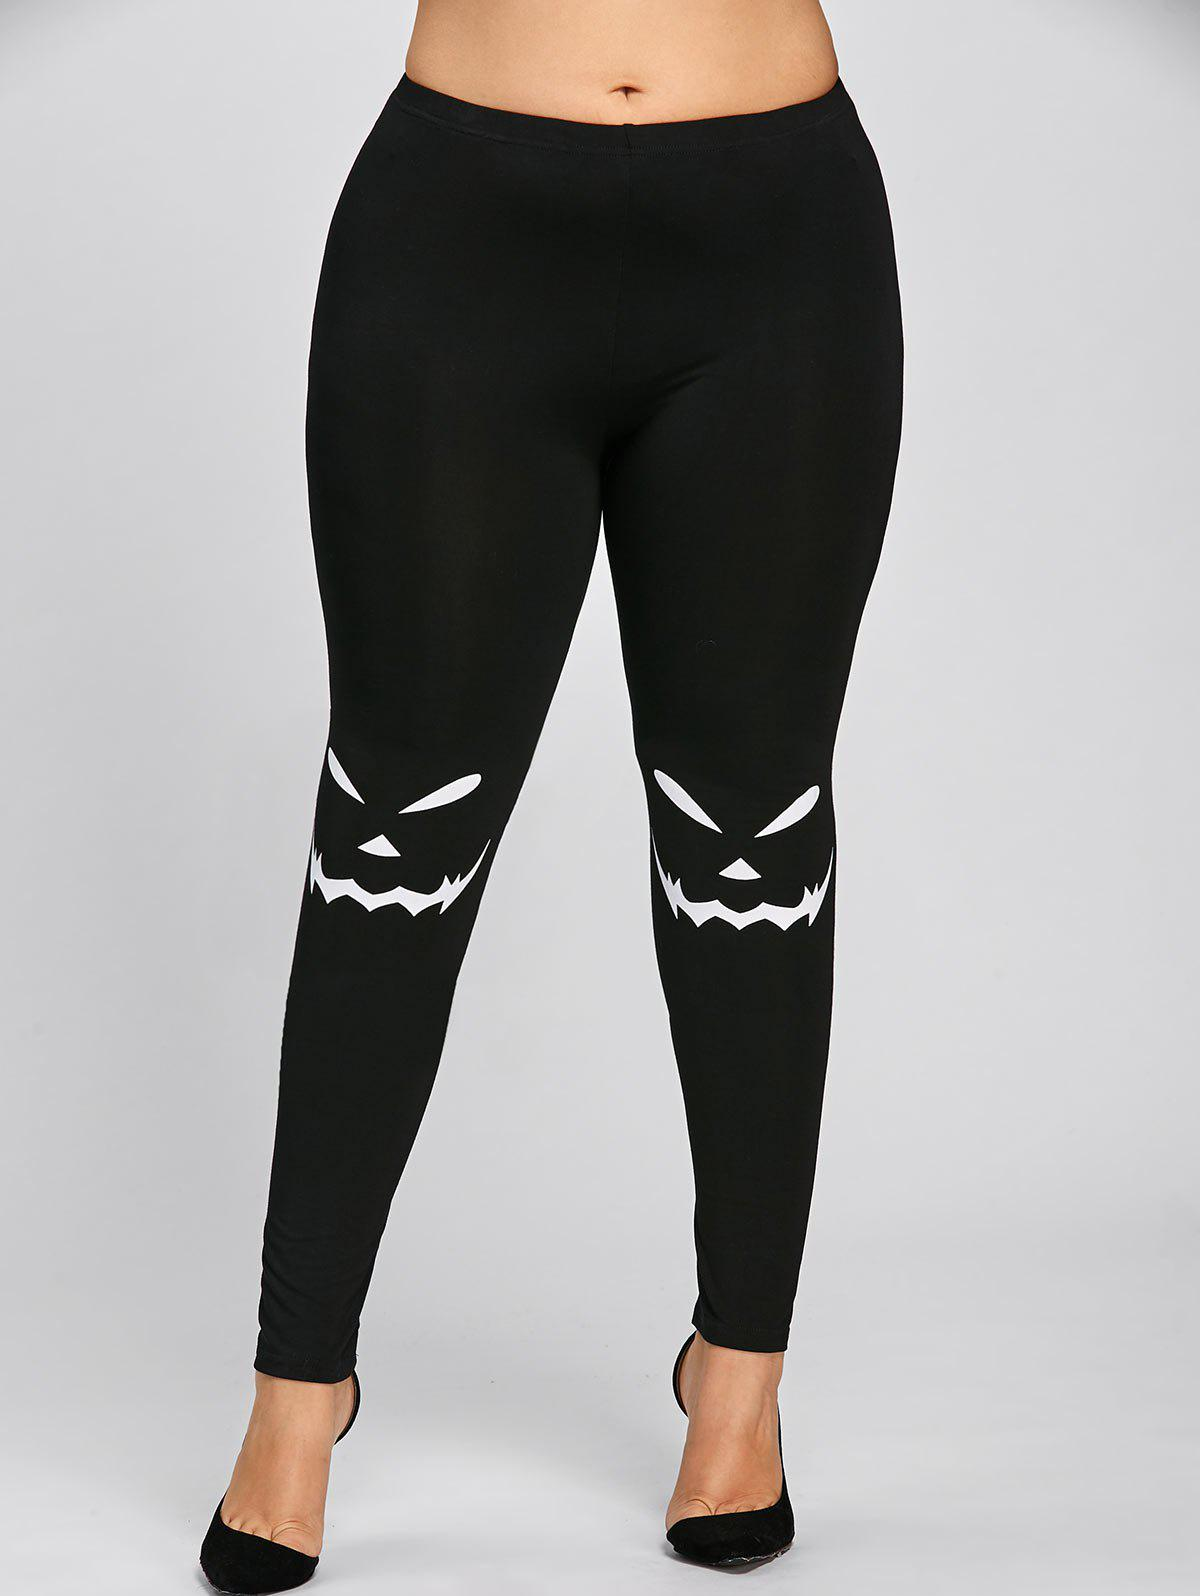 Halloween Plus Size Graphic LeggingsWOMEN<br><br>Size: 5XL; Color: BLACK; Style: Casual; Length: Normal; Material: Polyester,Spandex; Fit Type: Skinny; Waist Type: Mid; Closure Type: Elastic Waist; Pattern Type: Others; Pant Style: Pencil Pants; Weight: 0.2300kg; Package Contents: 1 x Leggings;